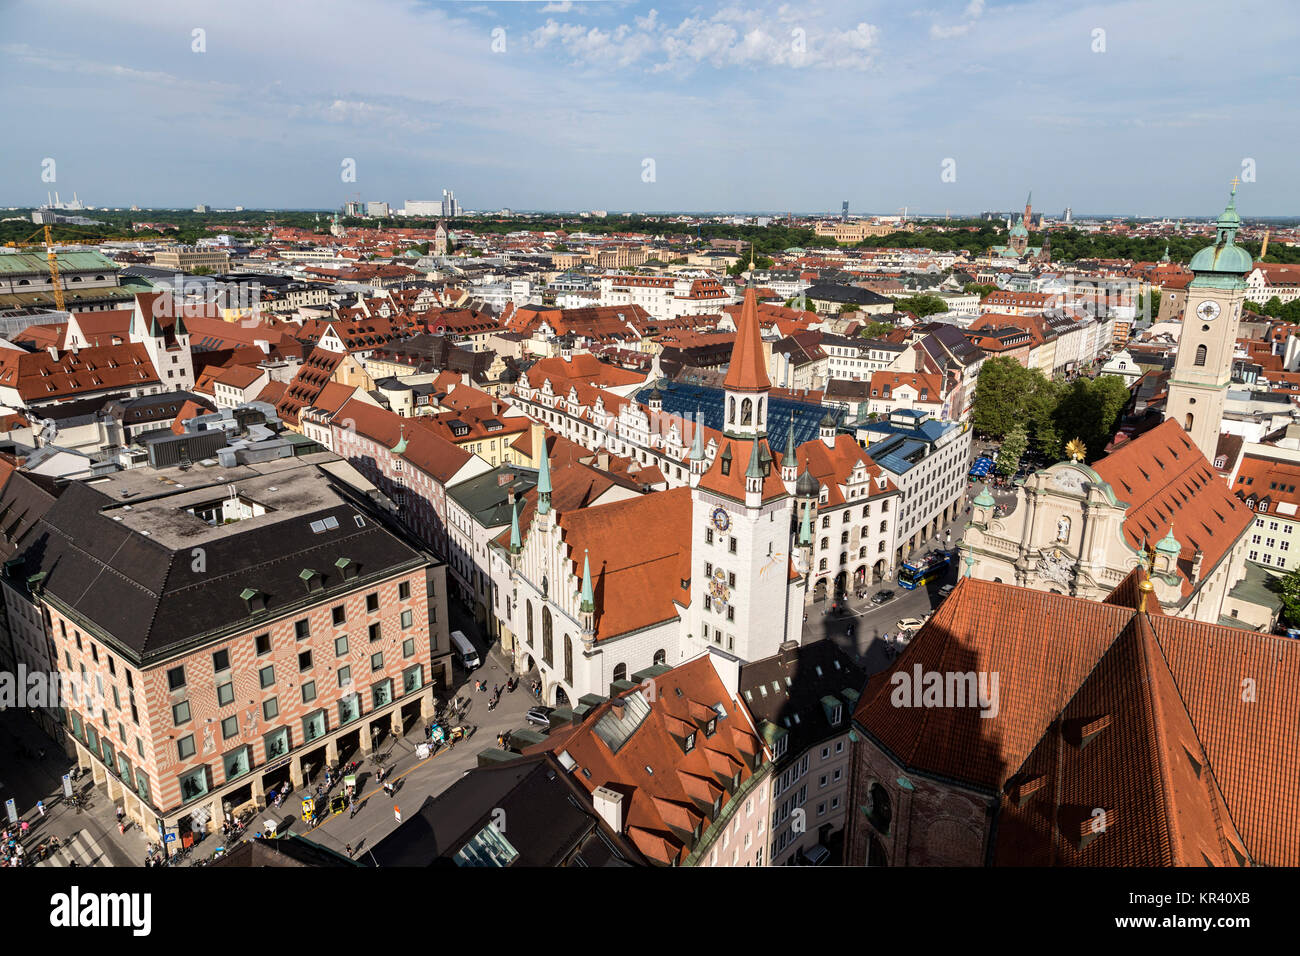 Beautiful super wide-angle sunny aerial view of Munich, Bayern, Bavaria, Germany with skyline and scenery beyond the city, seen from the observation deck of St. Peter Church Stock Photo